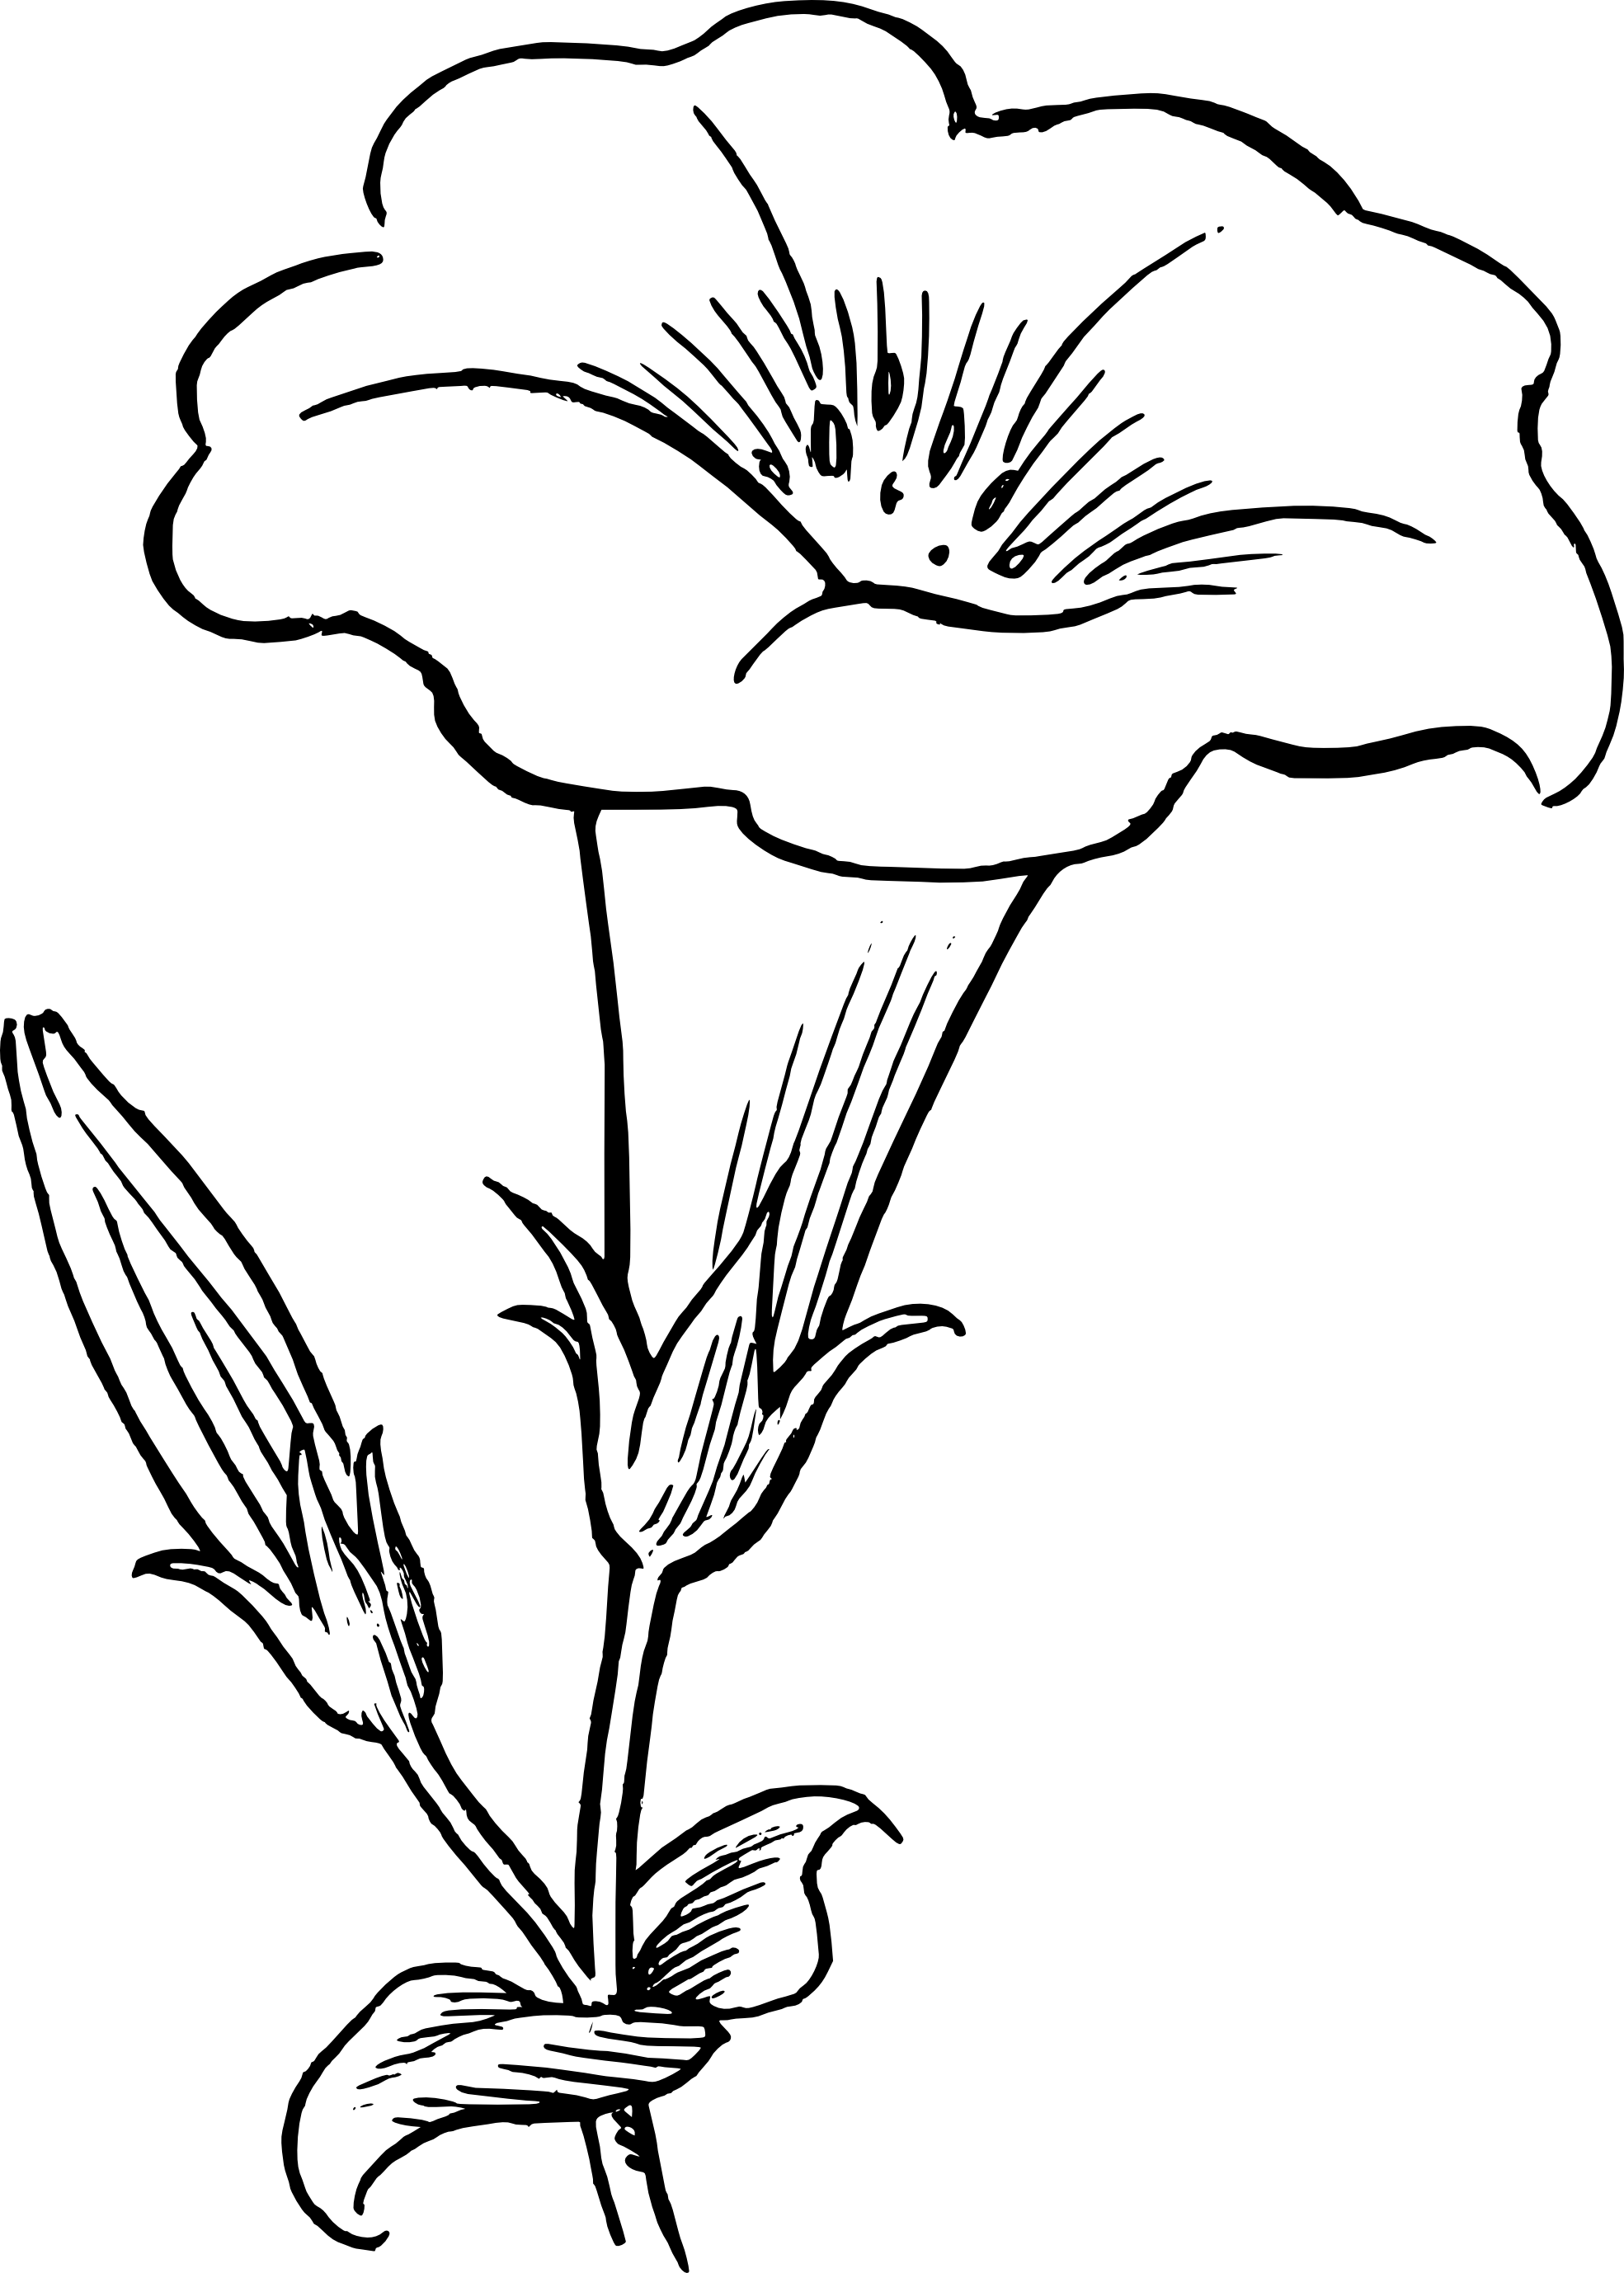 Cartoon Flower Line Drawing : Pictures of flower drawings cliparts